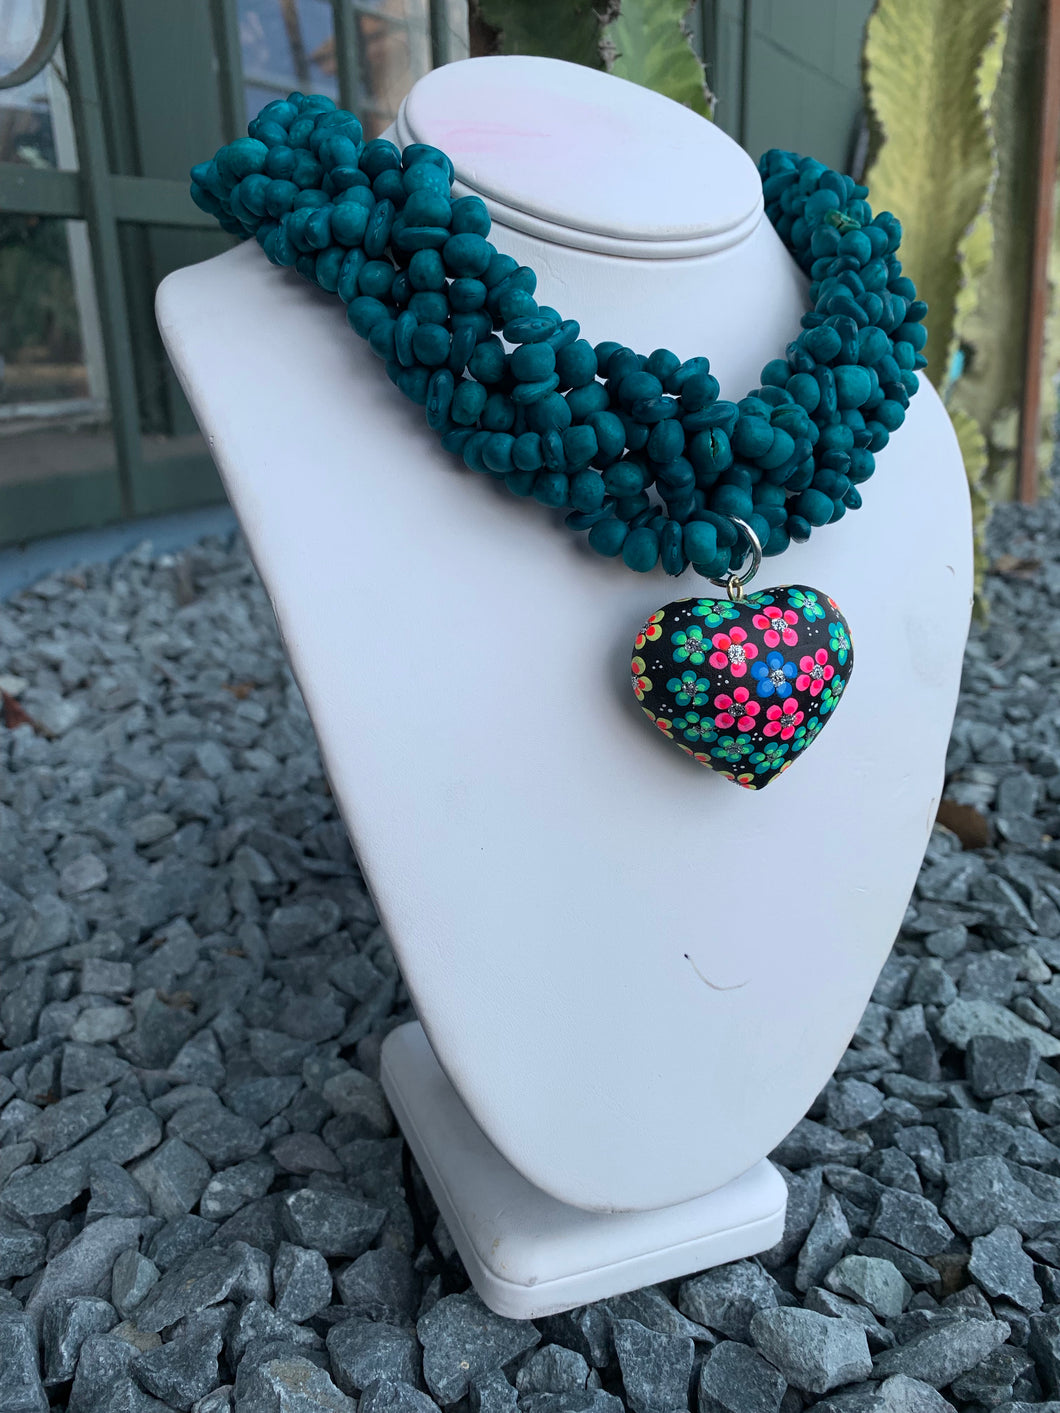 Handmade peas and beans necklace with alebrije pendant